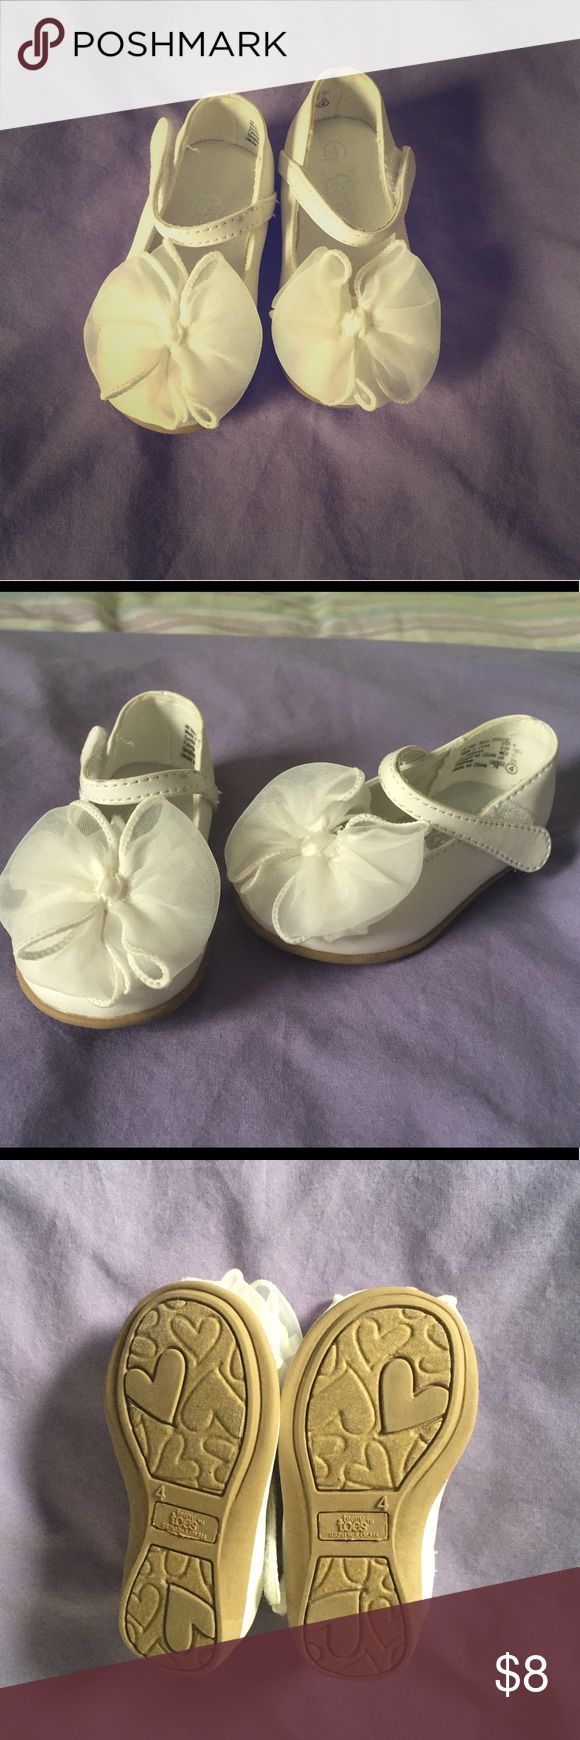 Girl's toddler dress shoes White dress shoes. Worn once or twice. Like new! Offers welcome Shoes Dress Shoes